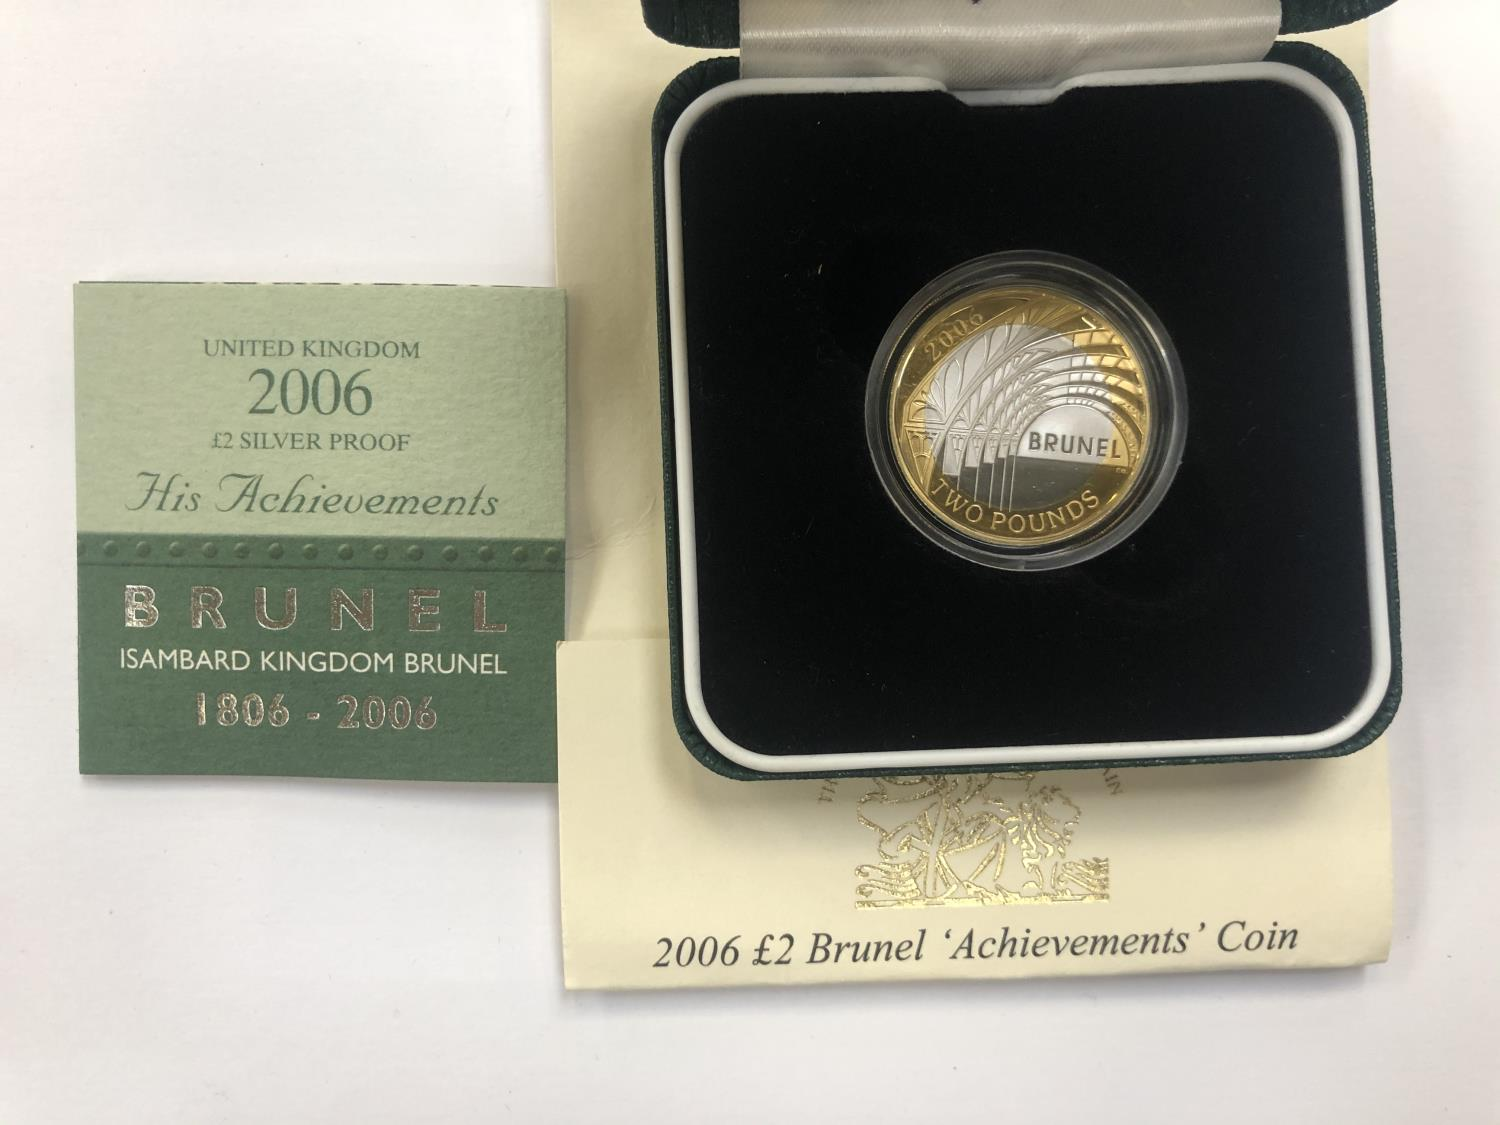 """Lot 535 - UK ROYAL MINT """"2006 £2 SILVER PROOF, BRUNEL, HIS ACHIEVEMENTS"""", ENCAPSULATED AND BOXED WITH C.O.A"""